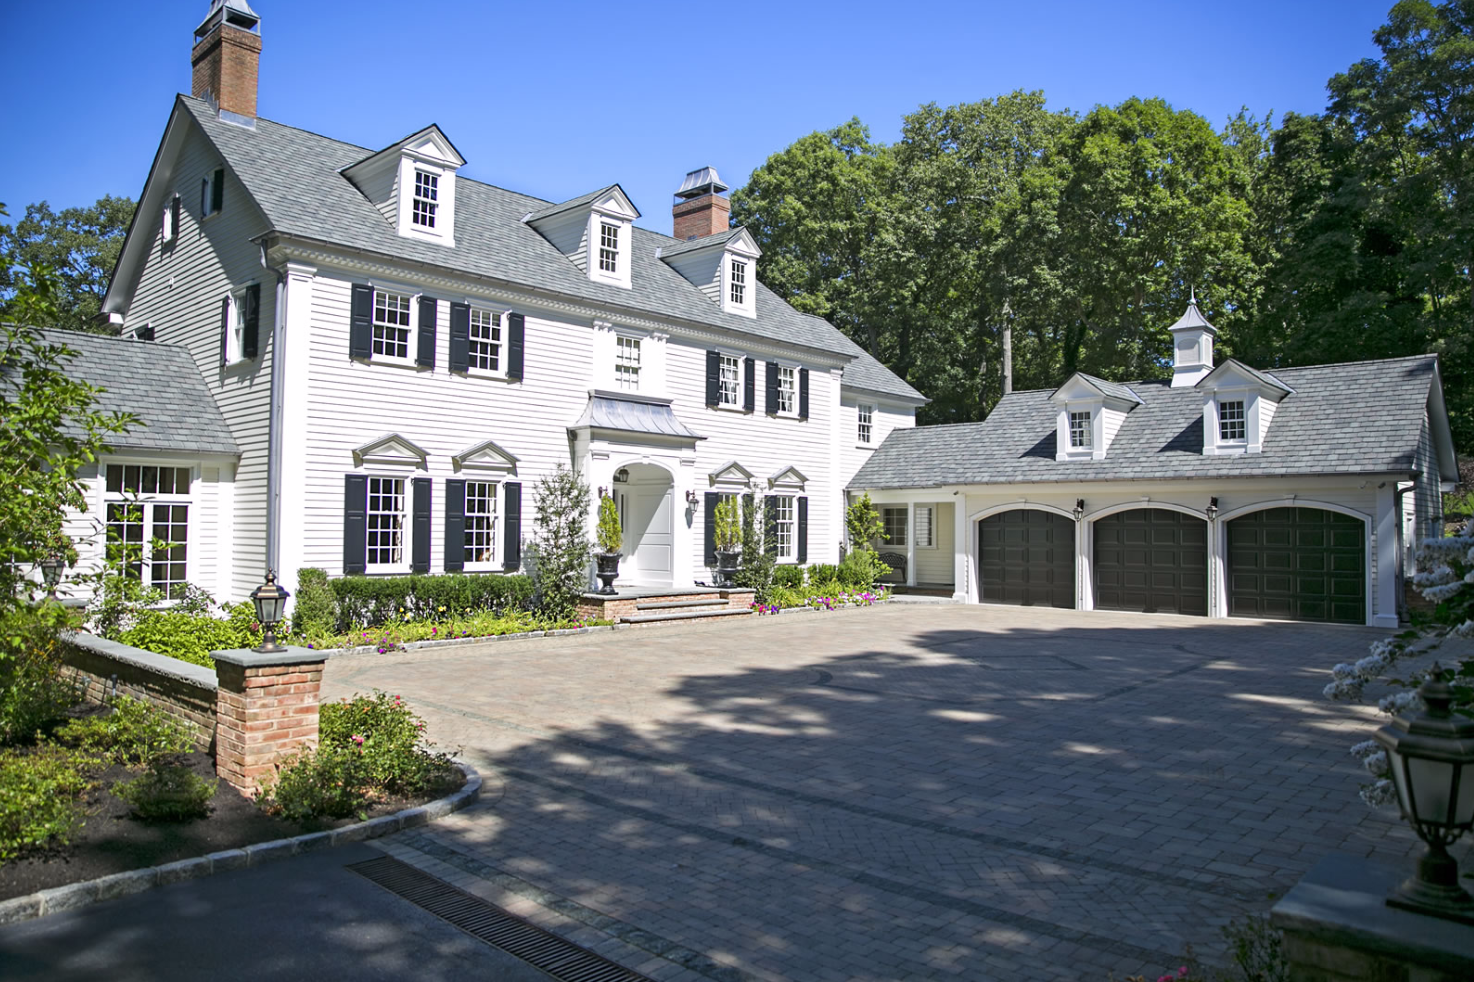 Landscaping Tips for the Summer and How We Can Help in Westhampton, NY